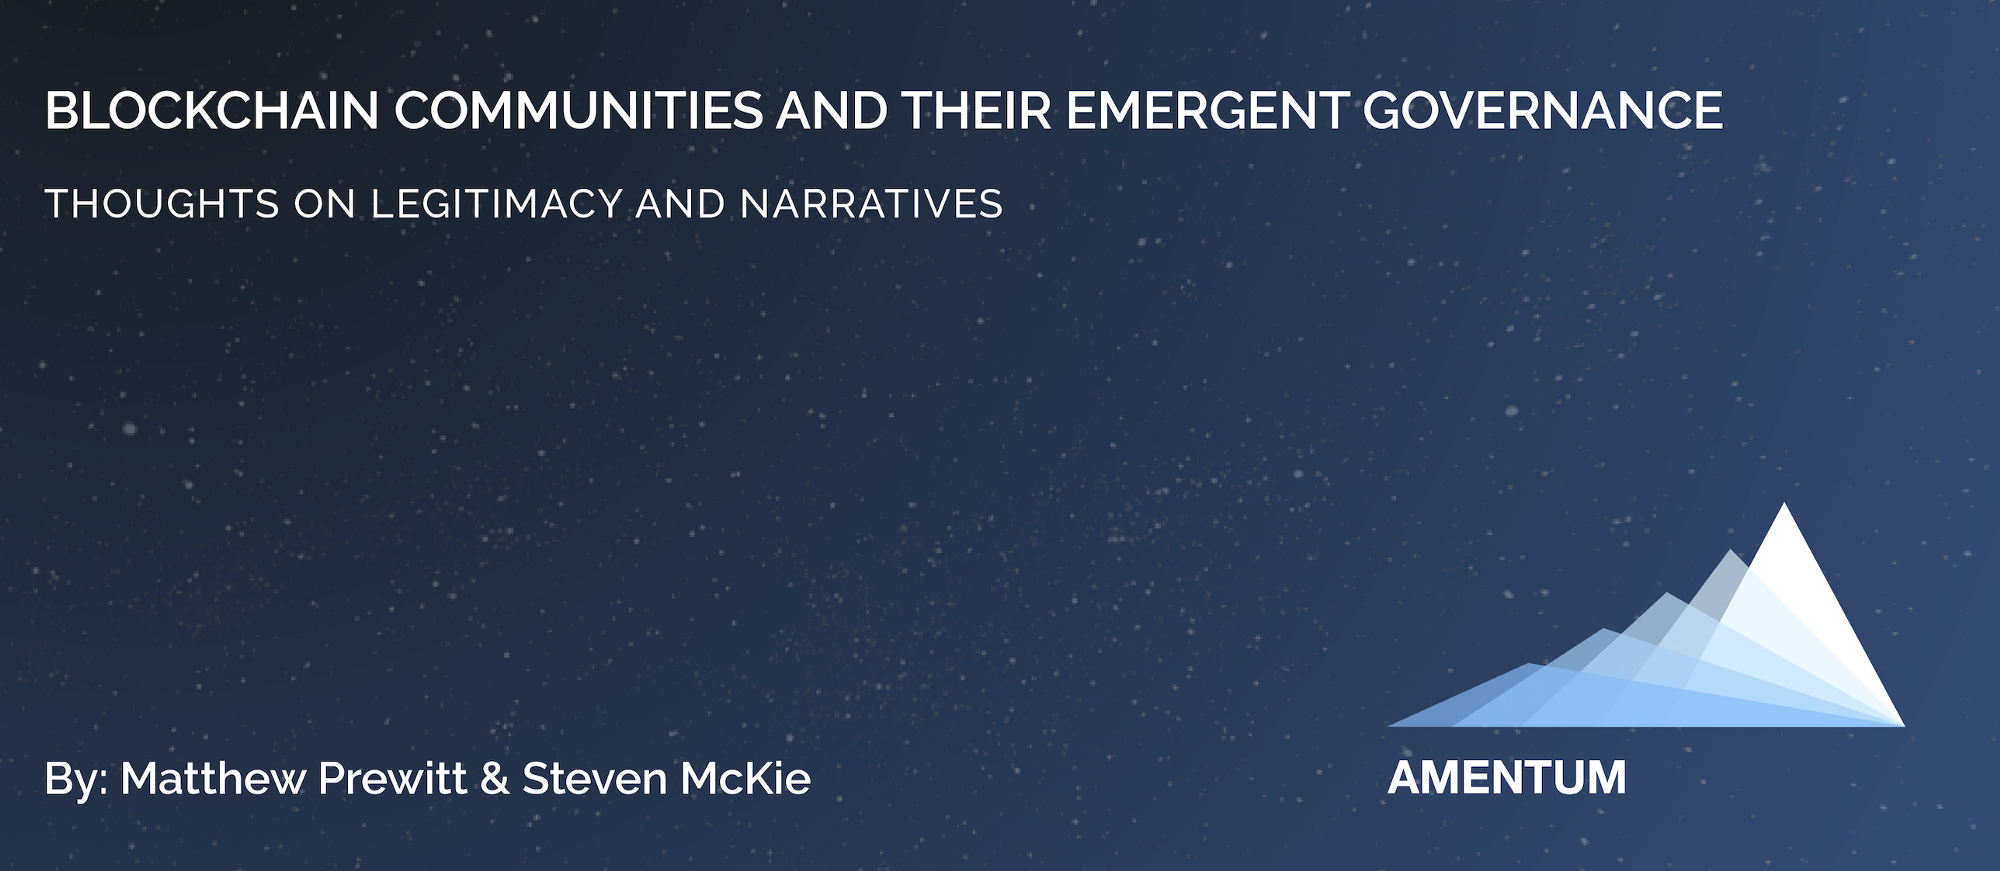 medium.com - Steven McKie - Blockchain Communities and Their Emergent Governance